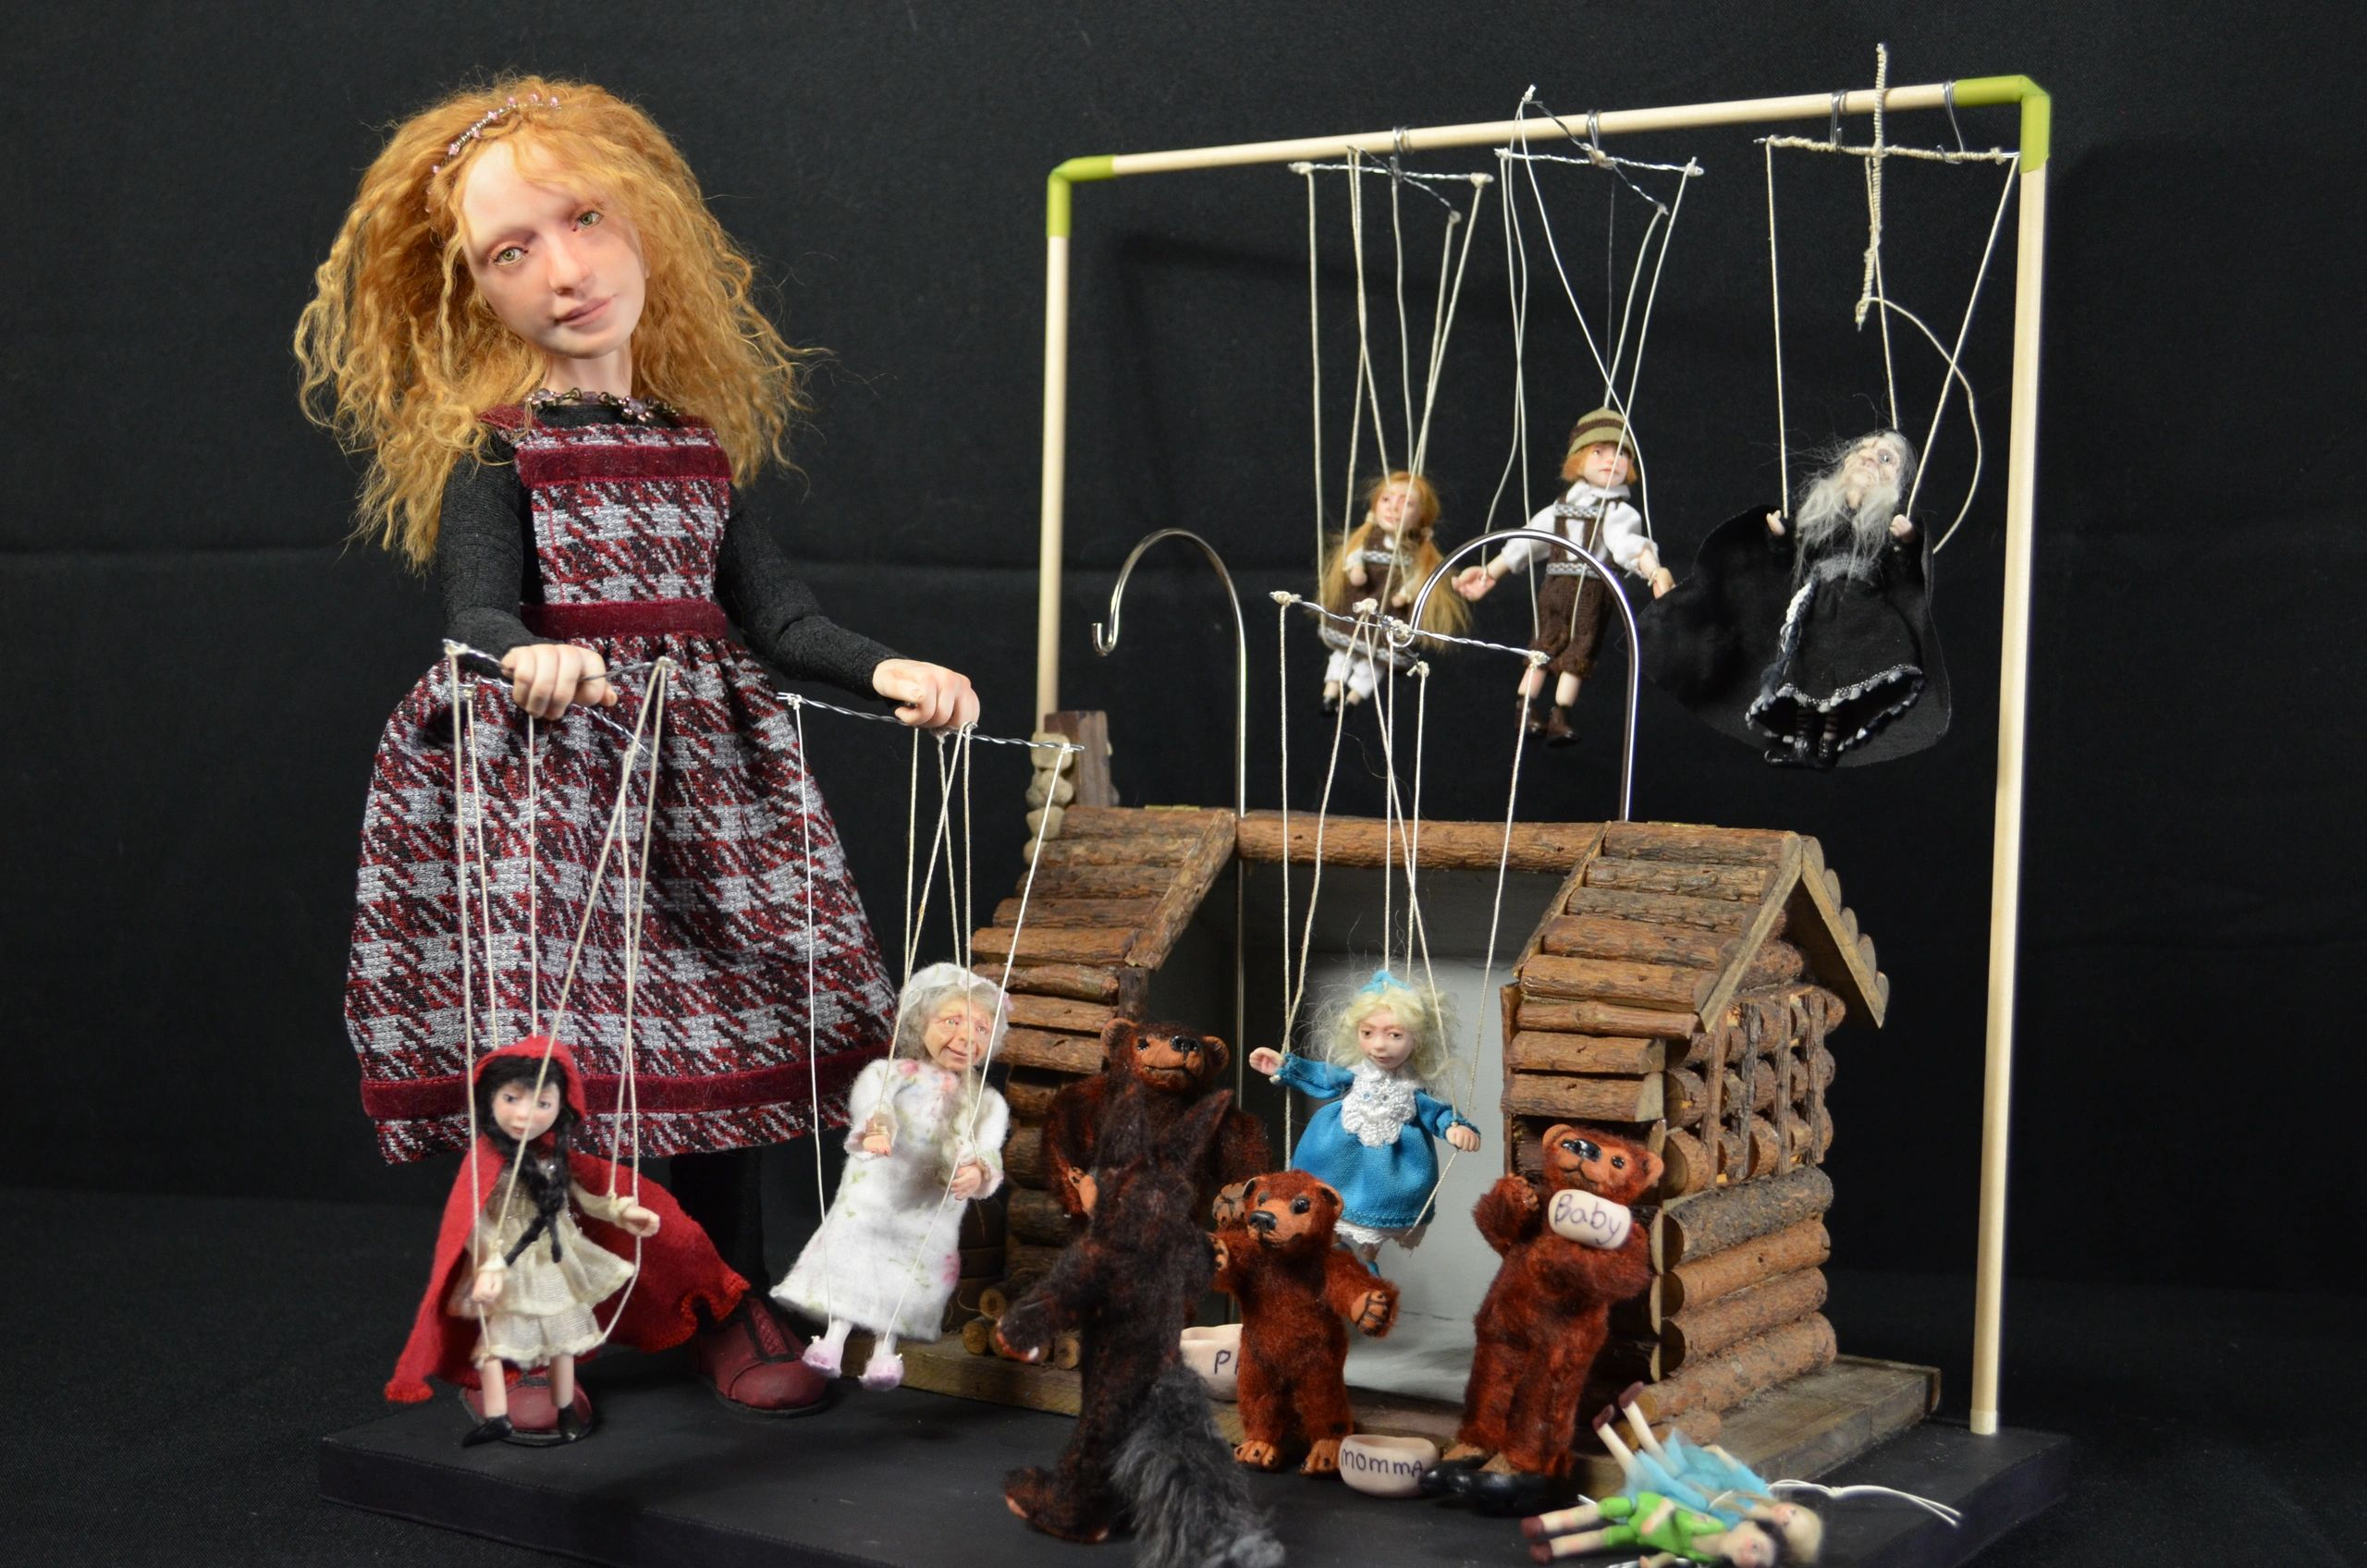 "{""blocks"":[{""key"":""o2uh"",""text"":""This is Mary the doll maker, She is a 12\"" Pose-able polymer clay doll. The set included all that is seen here. The doll and all accessories are hand made my LindaE. She was one of the Industry choice winners in the 2019 Dolls magazine Diamond Awards. She is currently part of the collection at the Quinlan Doll and Bear Museum in California. r"",""type"":""unstyled"",""depth"":0,""inlineStyleRanges"":[],""entityRanges"":[],""data"":{}}],""entityMap"":{}}"